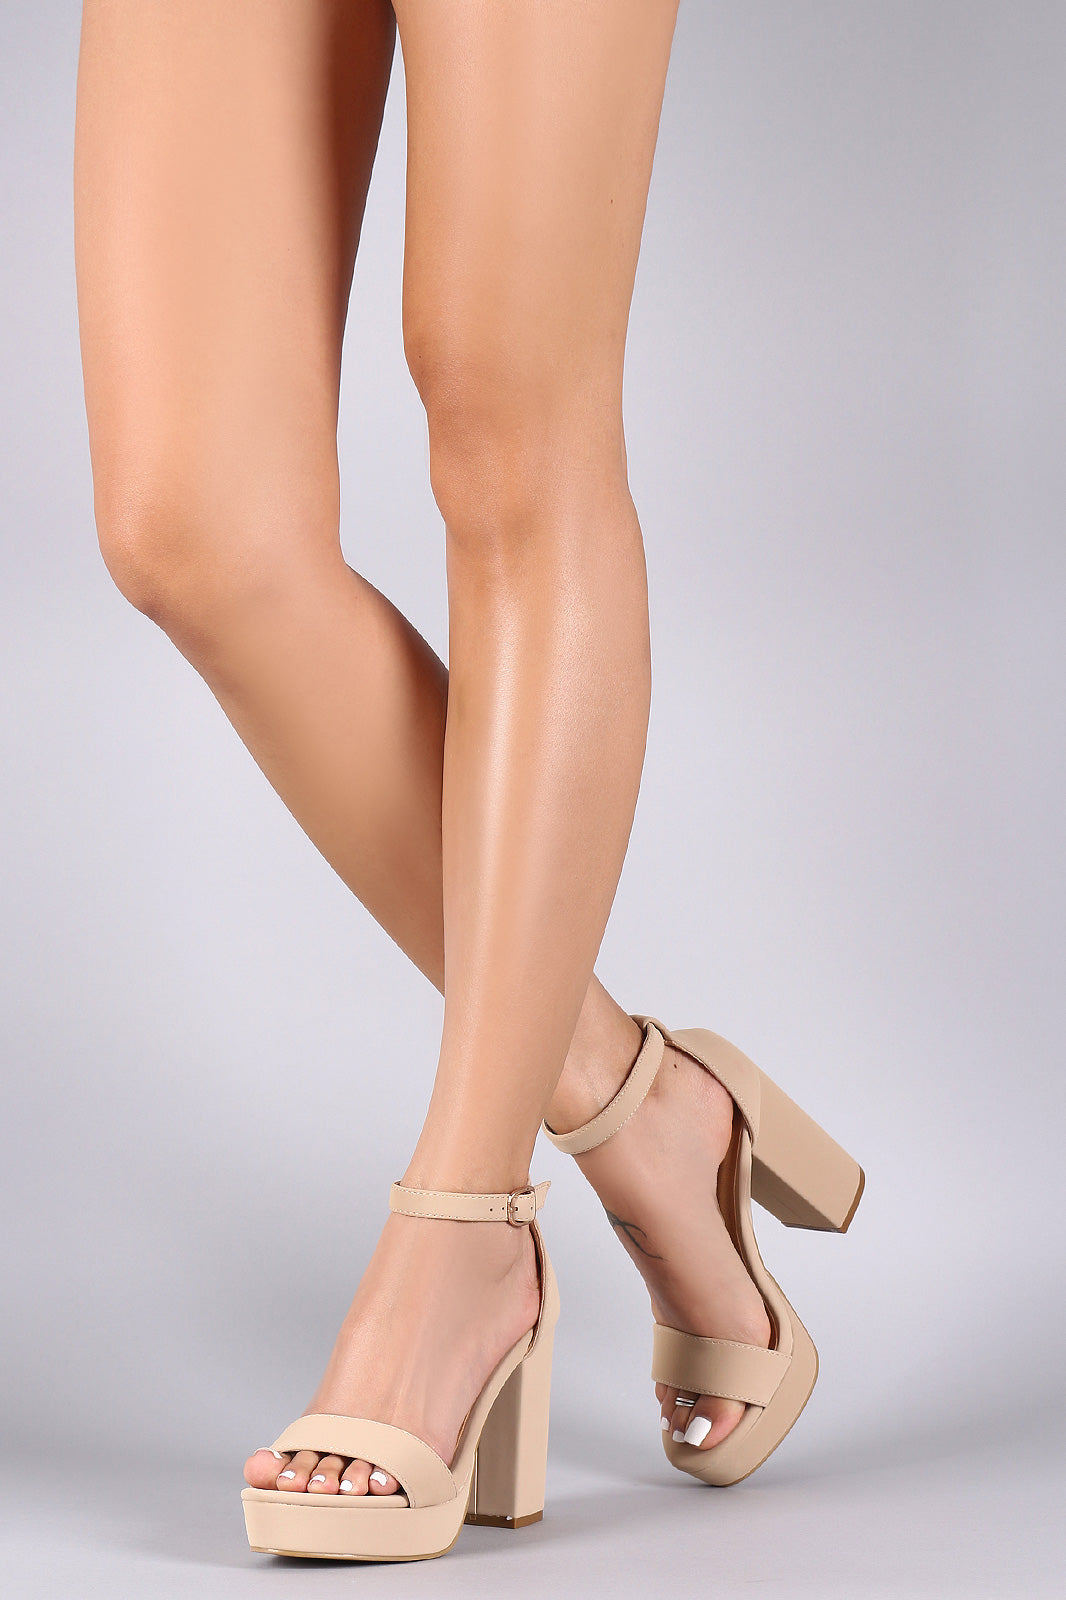 Bamboo Nubuck Ankle Strap Chunky Platform Heels - LABELSHOES